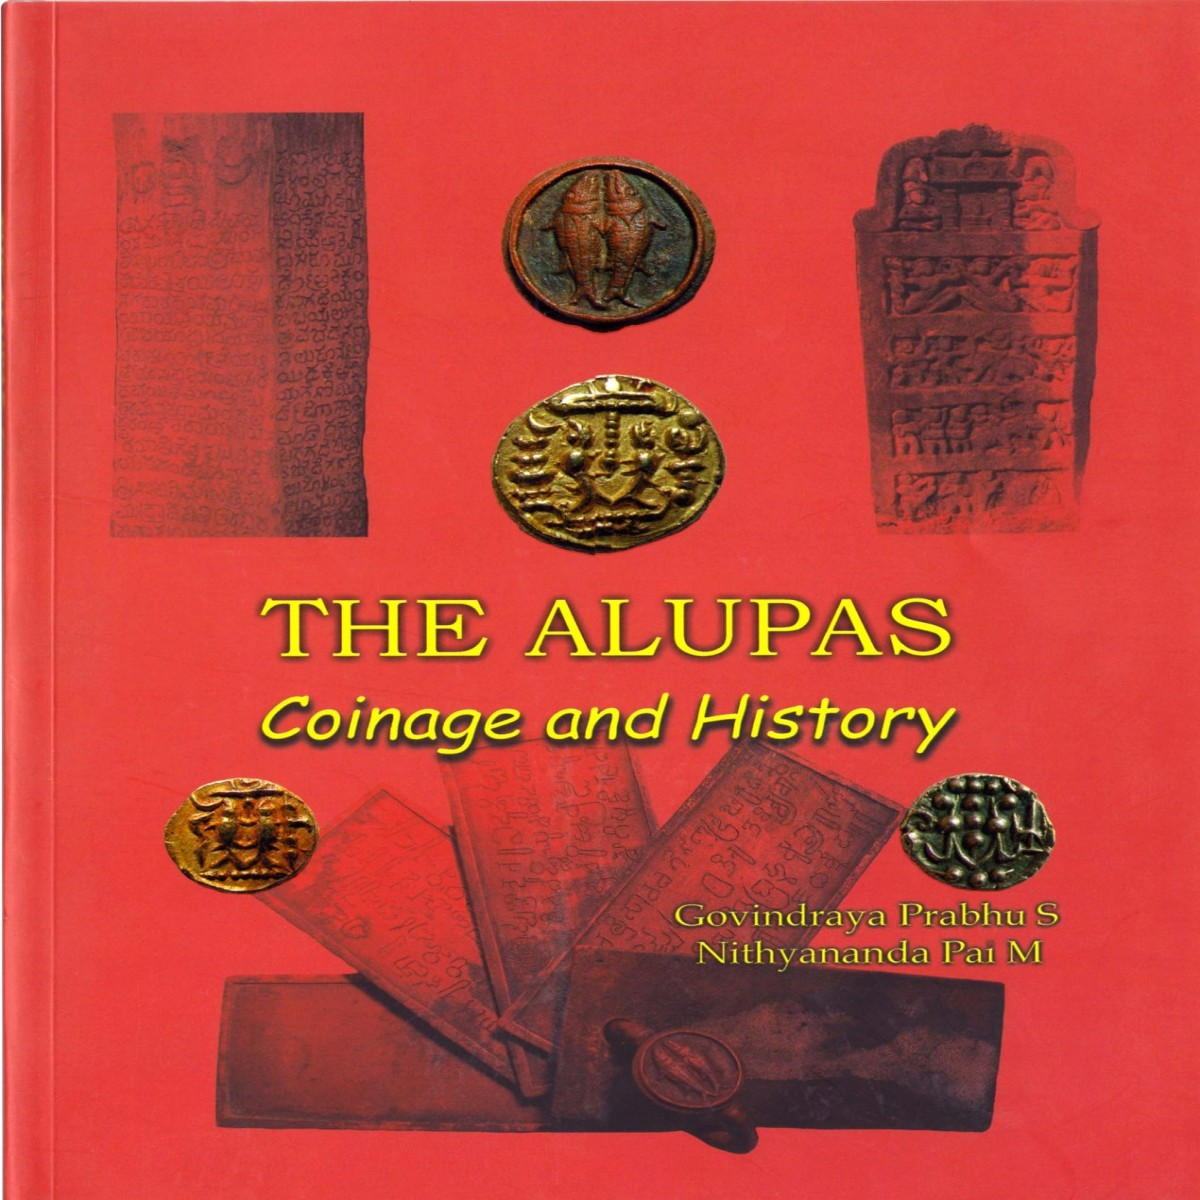 The Alupas: Coinage and History